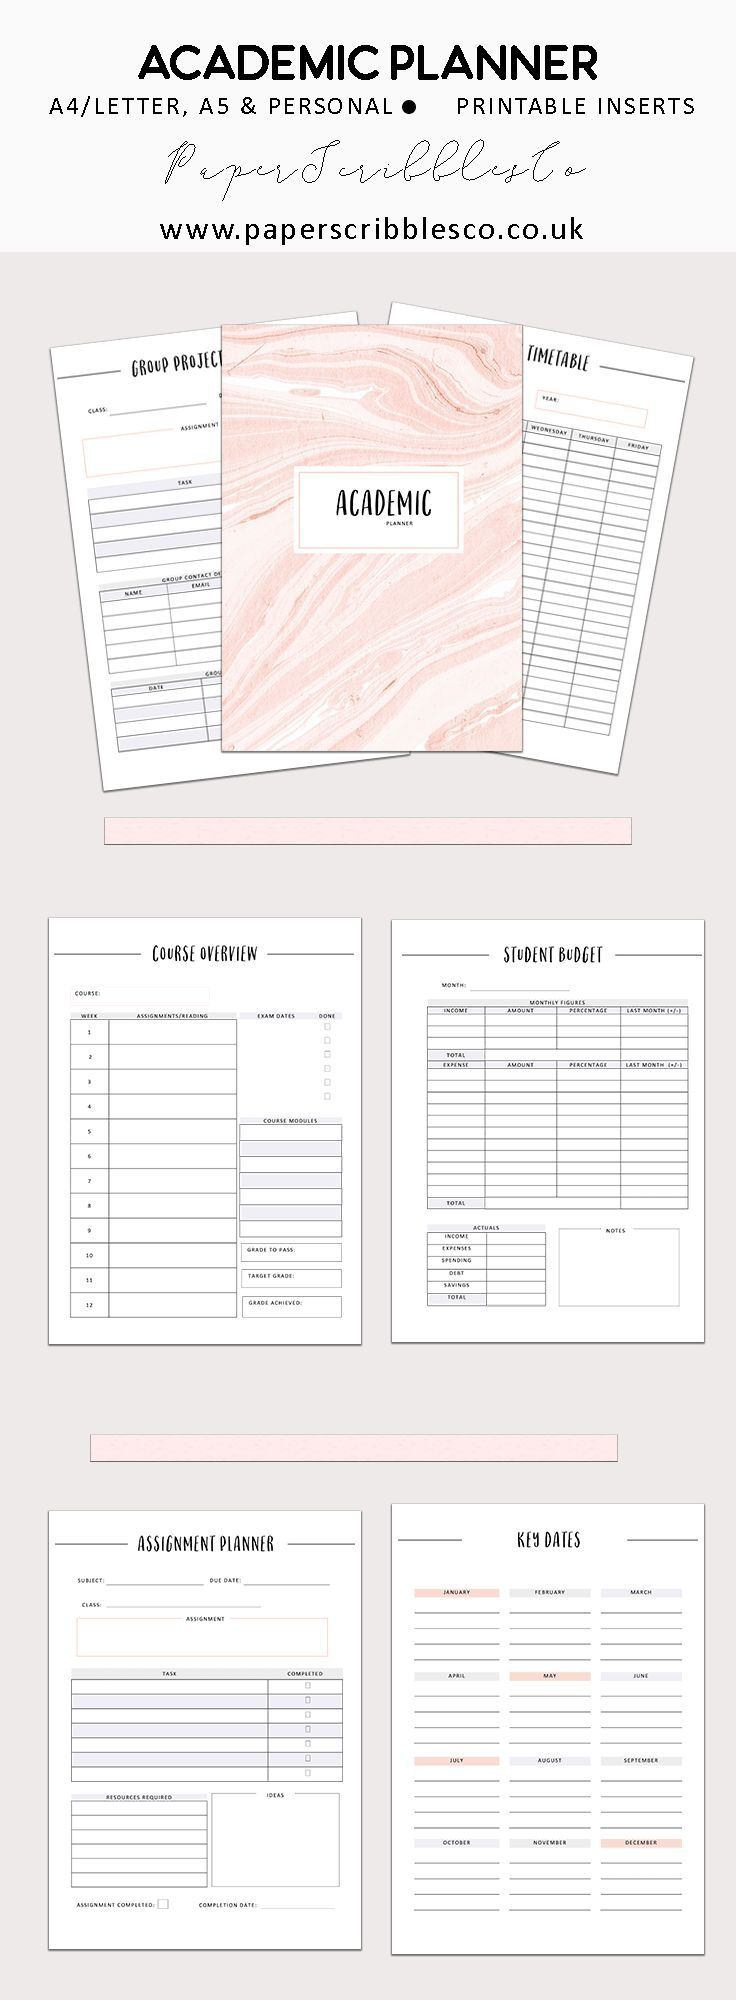 Academic Planner   Student Planner   College Planner   Printable Planners   Planning   Student Budget   College Planning   Planner Inserts   Printable Inserts   Planner Organization